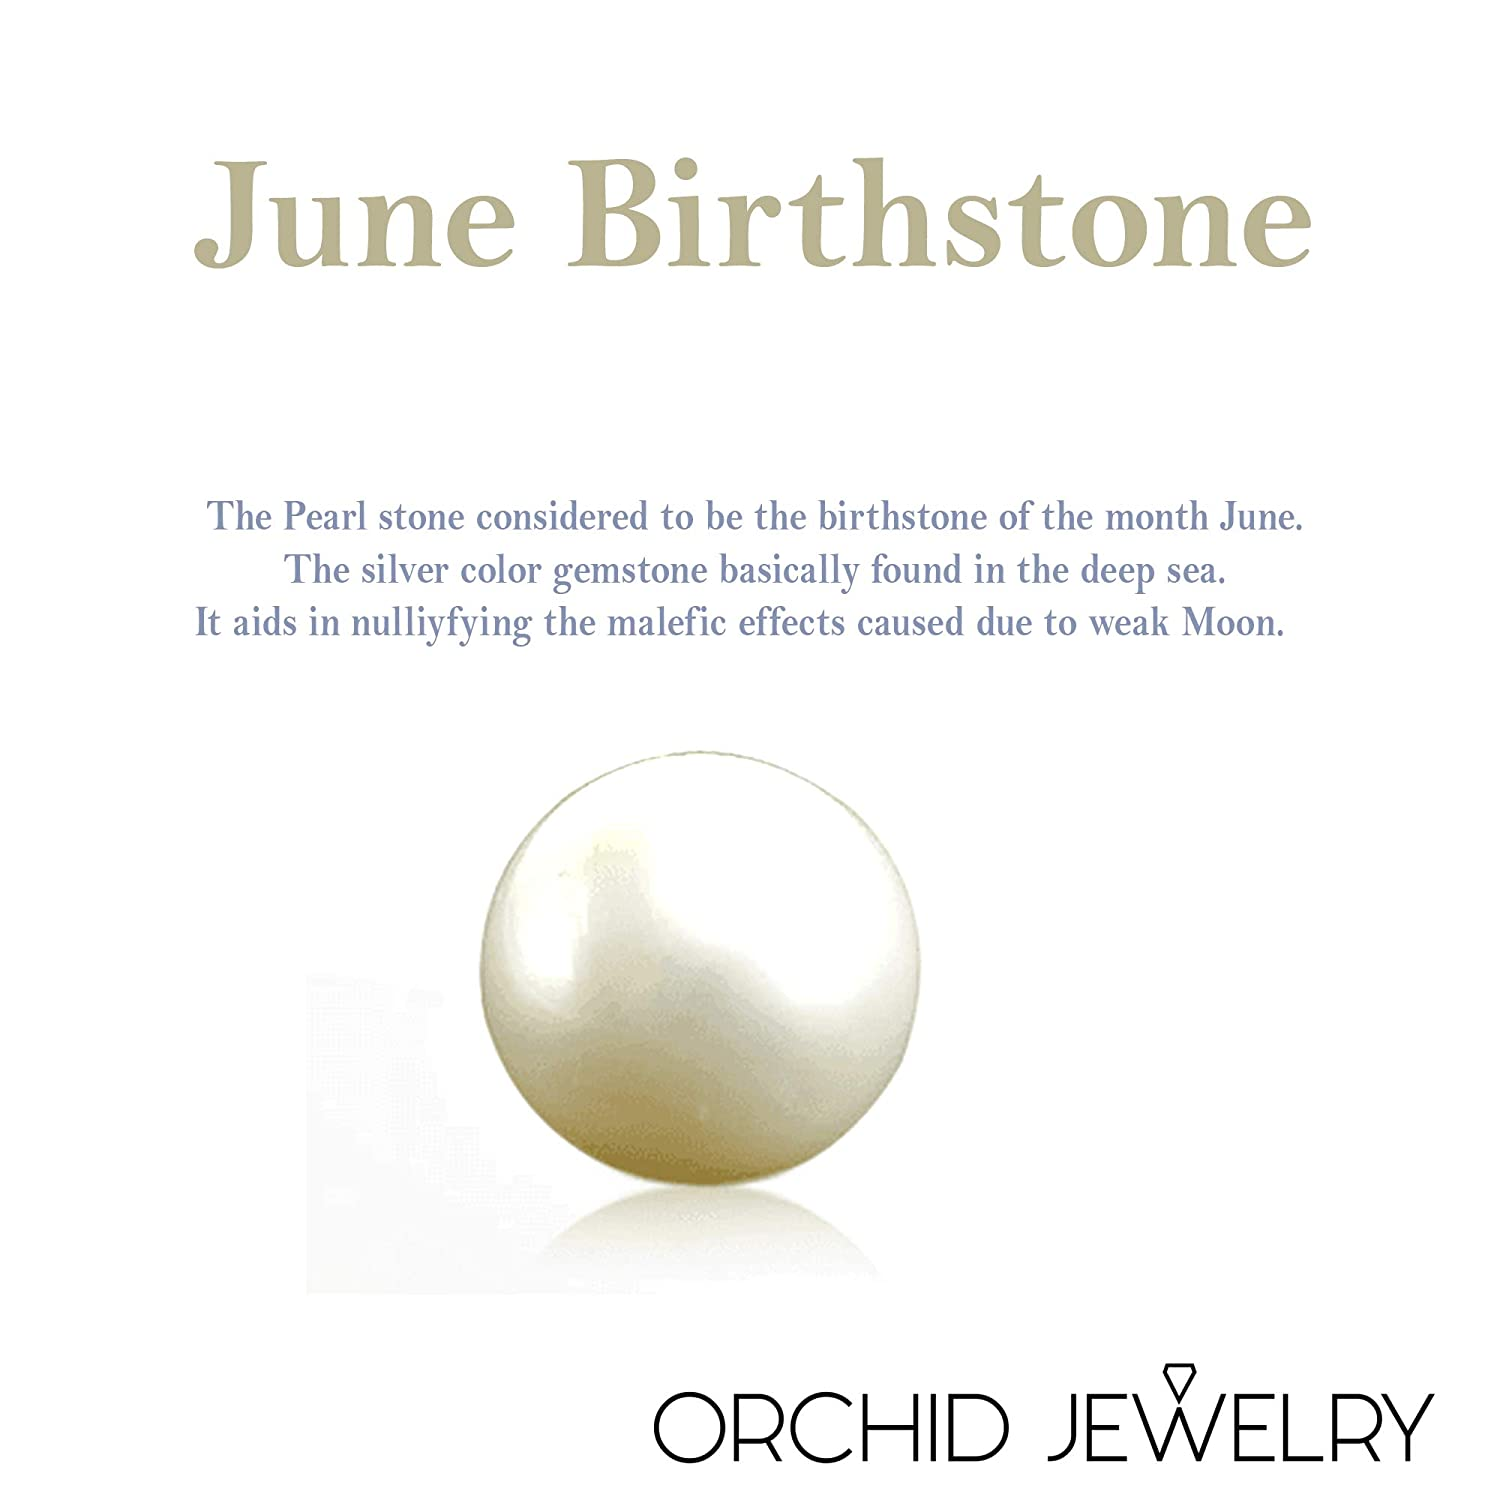 0e1afba19 8.50 Ct White Round Cut Pearl 925 Sterling Silver Stud Earrings For Women:  Nickel Free Cute And Simple Engagement Gift For Sister: Birthstone  Month-June By ...